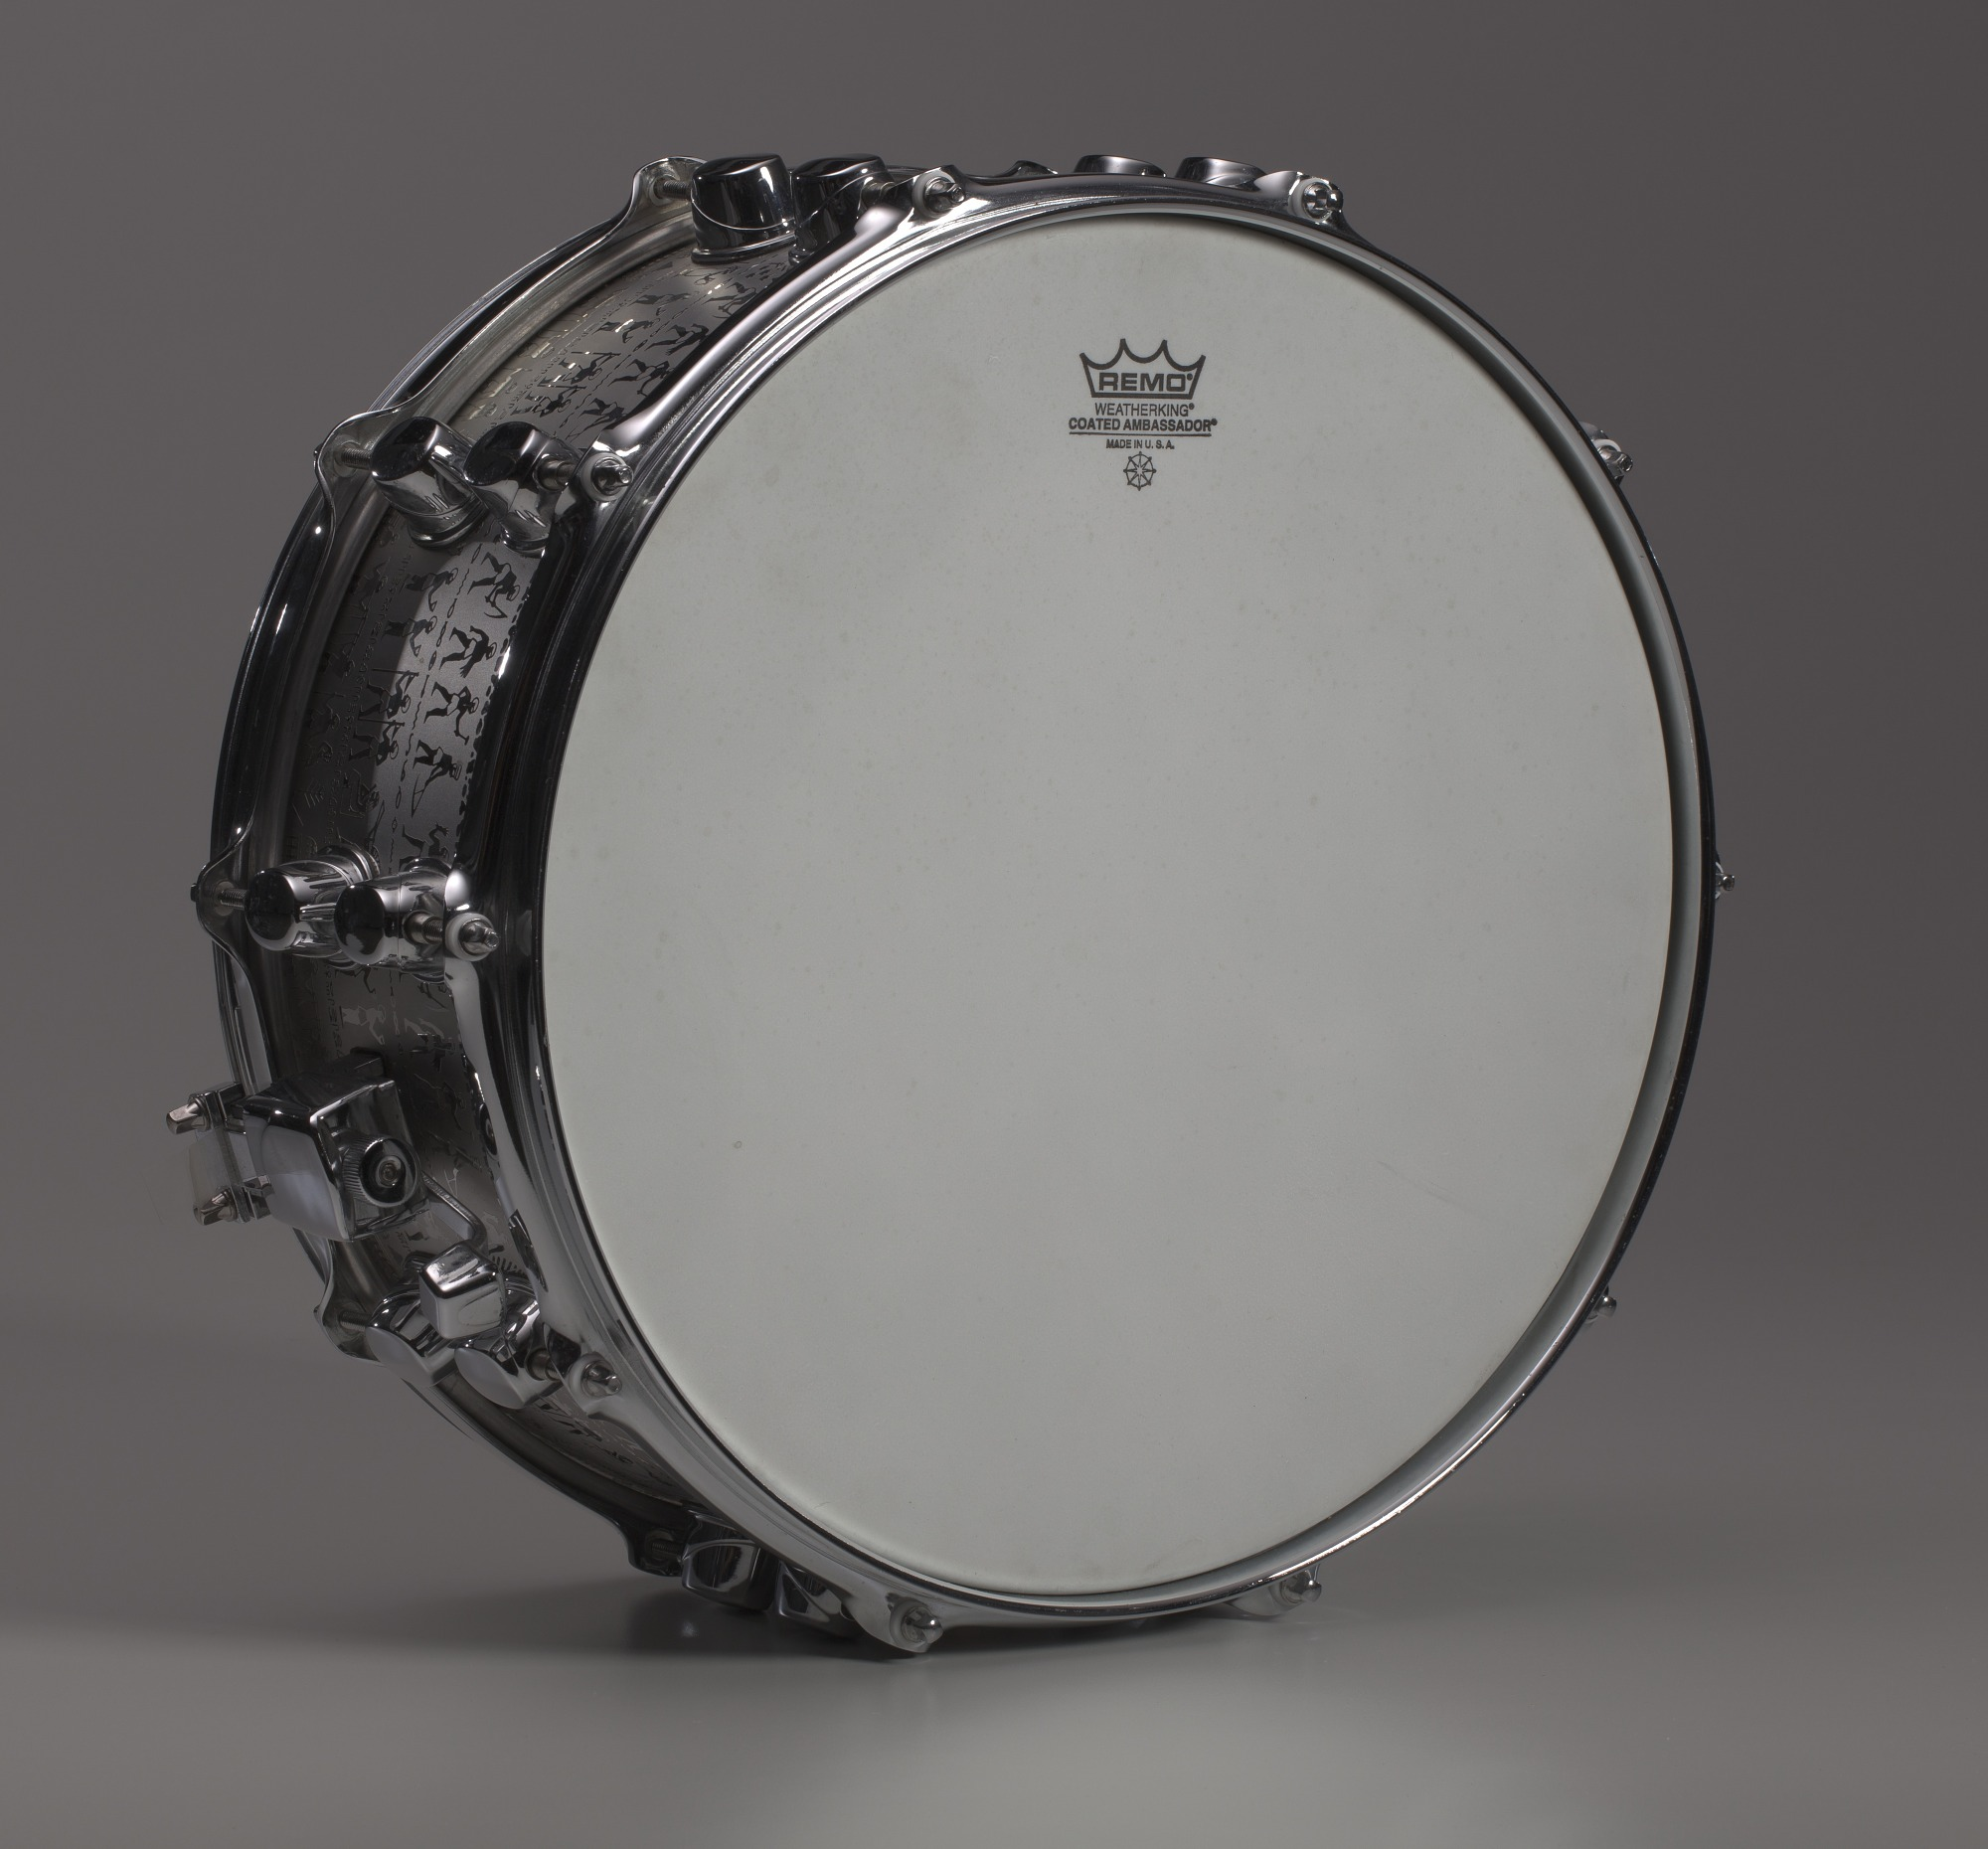 Image 1 for Custom snare drum owned by Will Calhoun